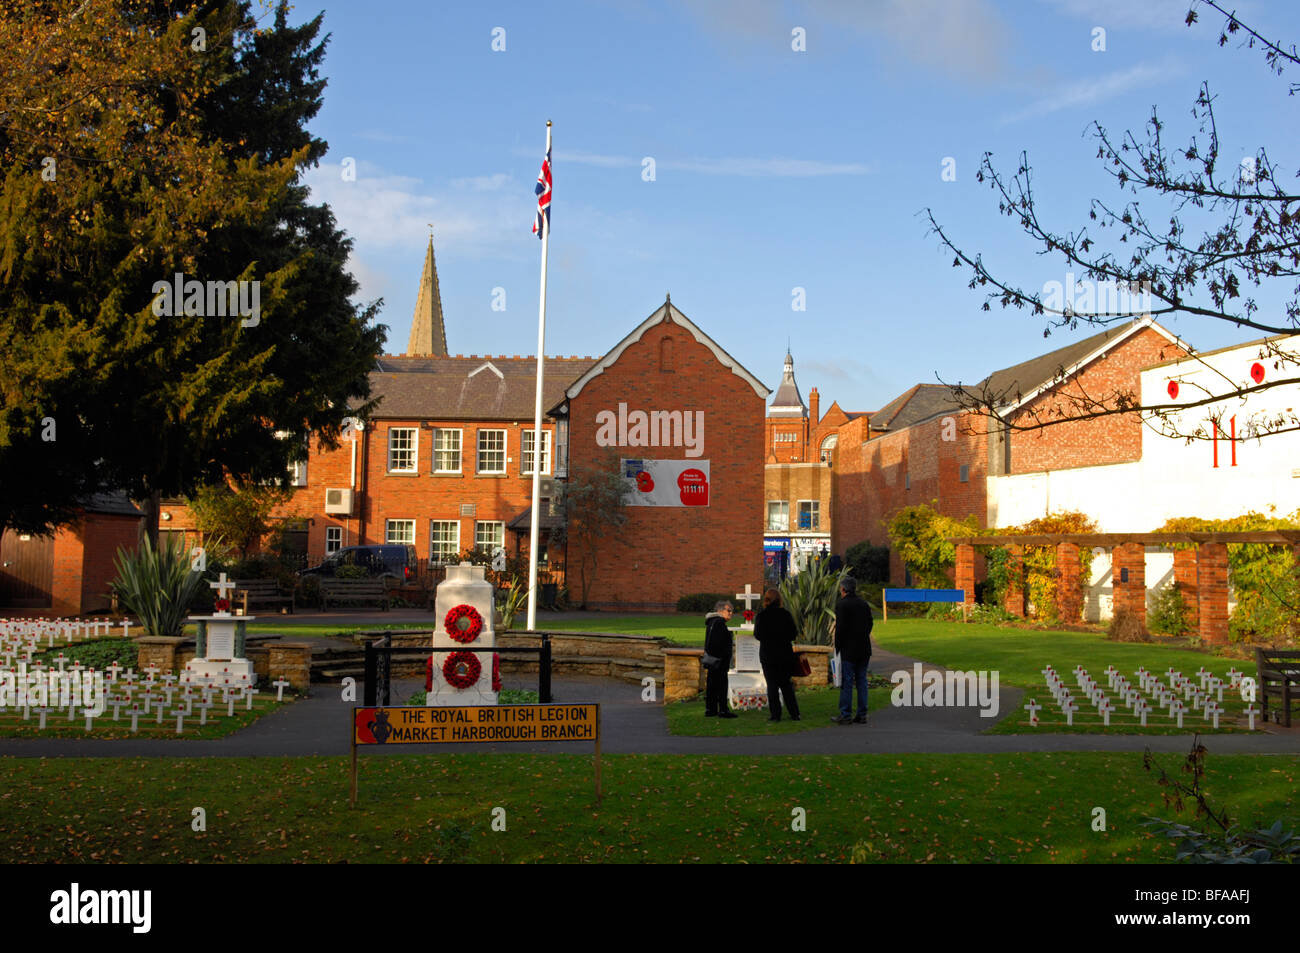 The garden of remembrance in Market Harborough - Stock Image